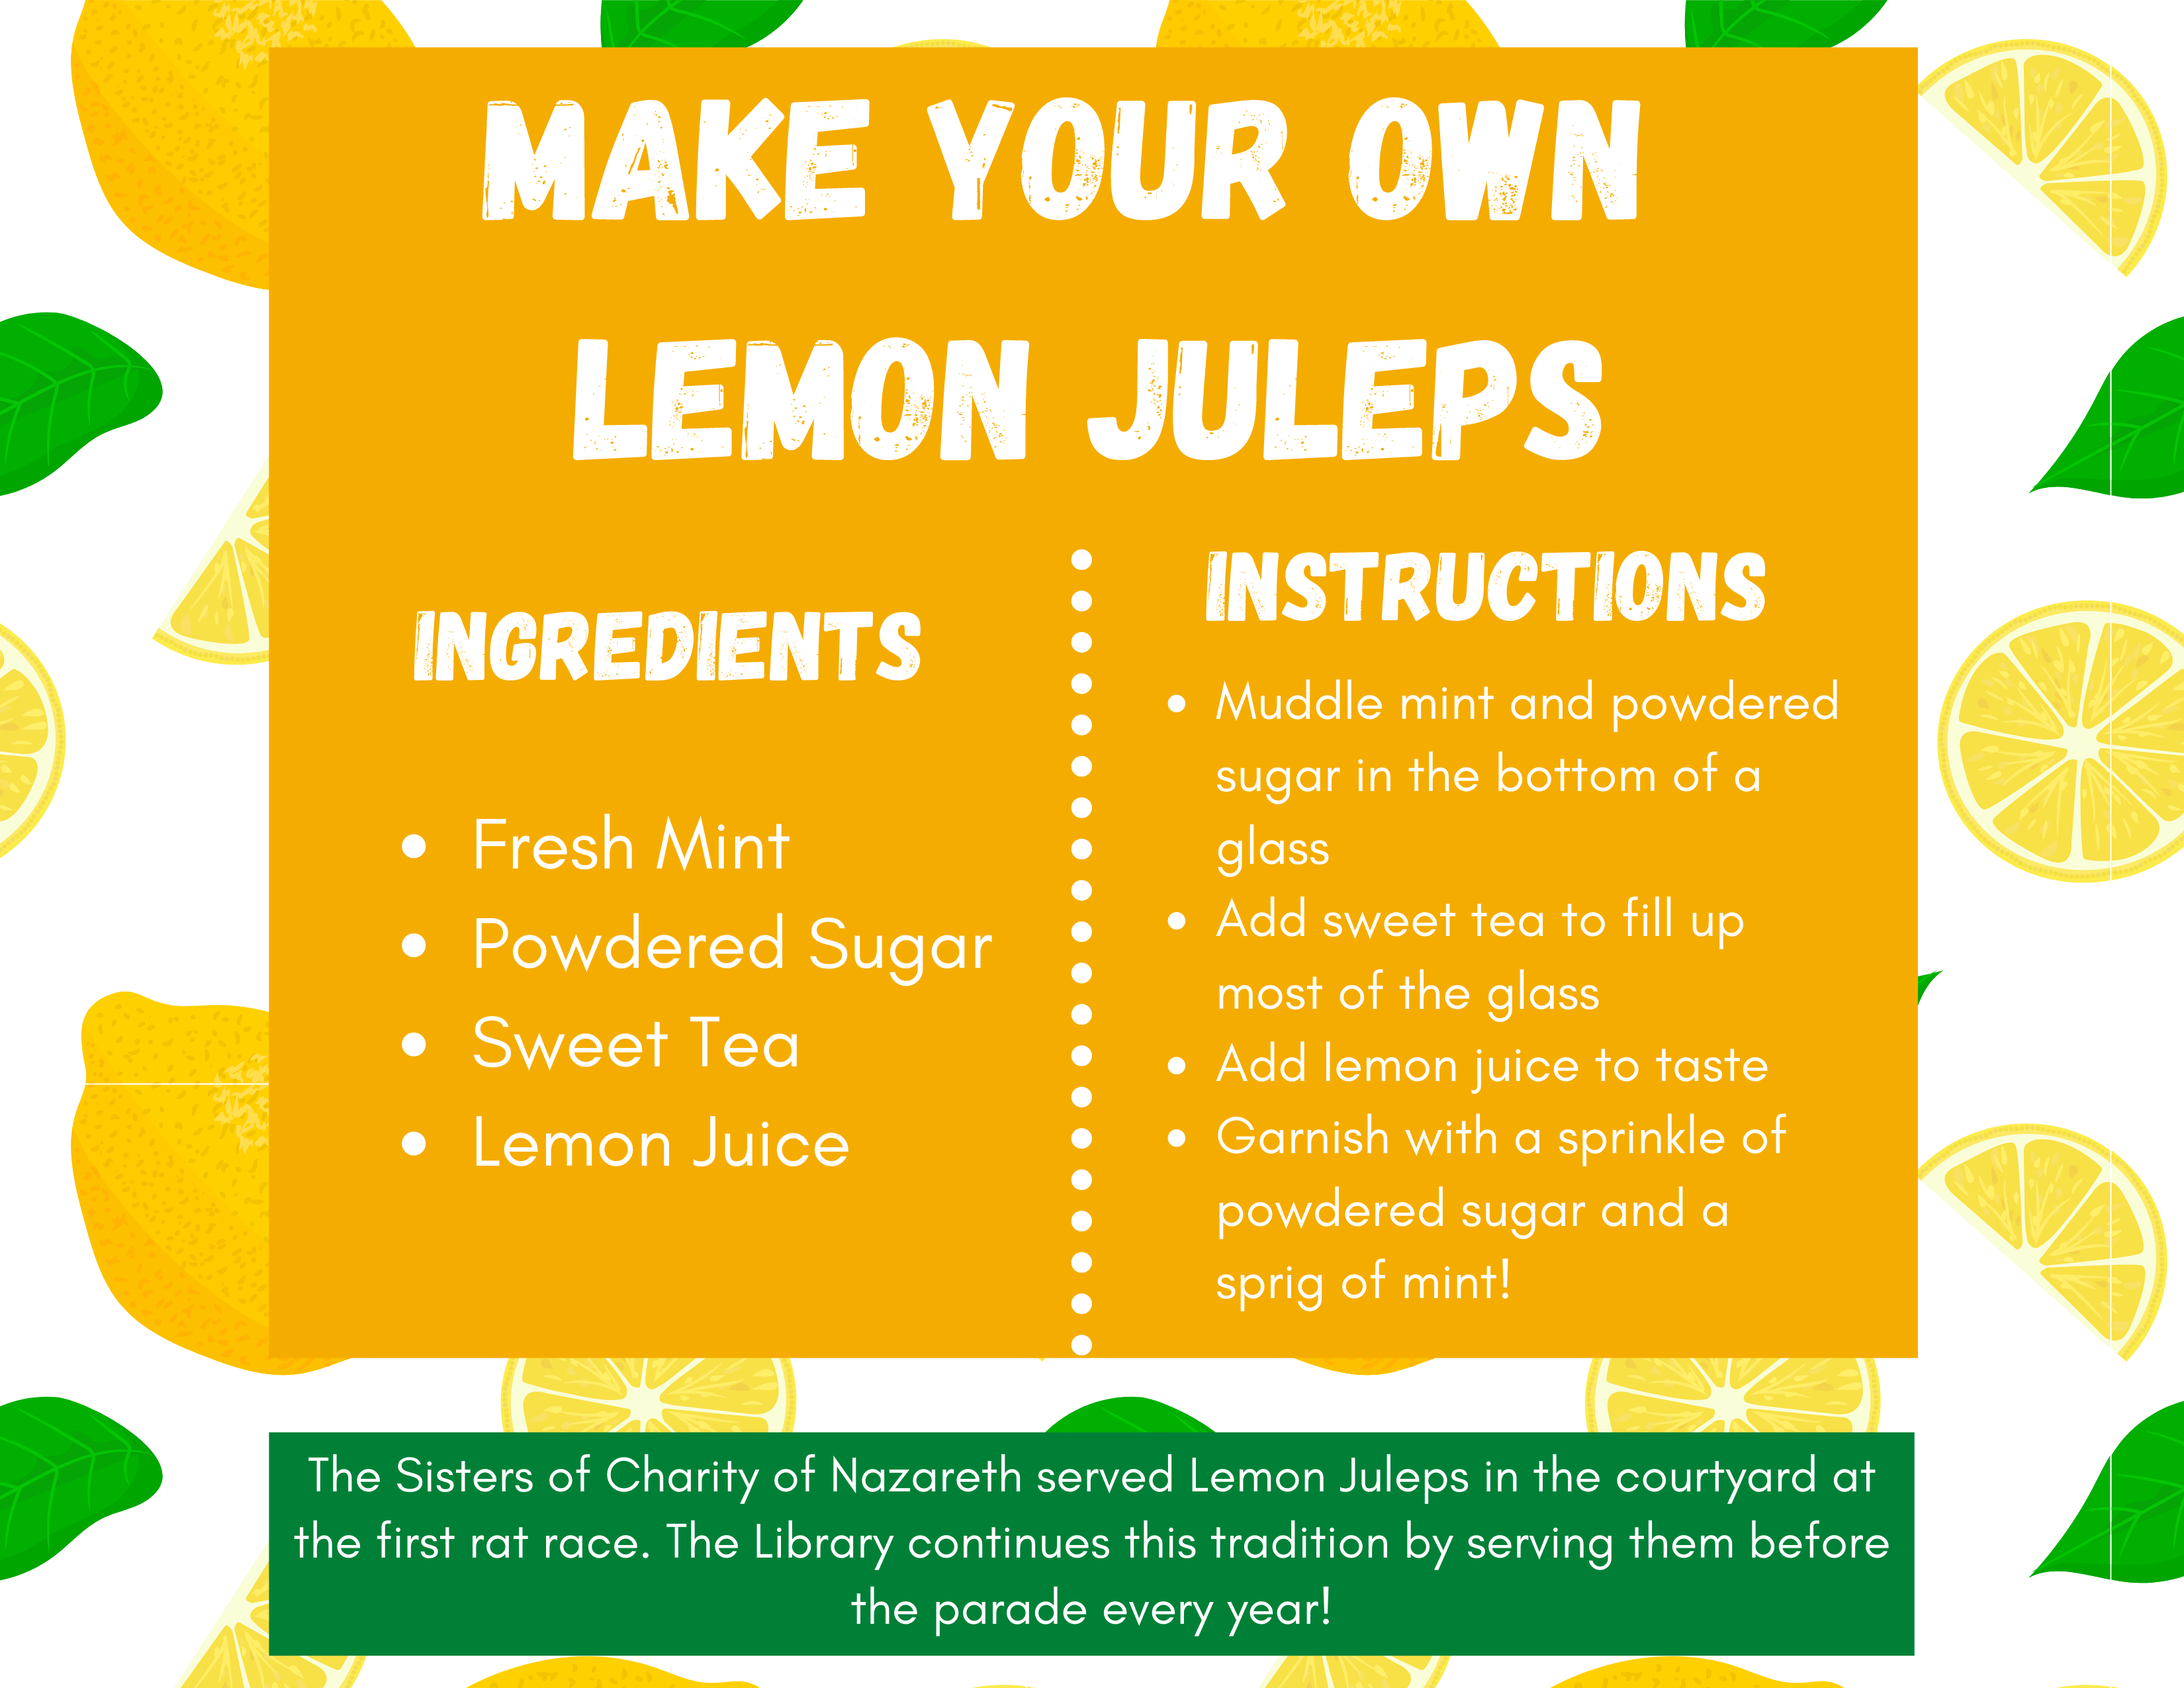 Make your own  Lemon Juleps. Ingredients: Fresh Mint, Powdered Sugar, Sweet Tea, Lemon Juice. Directions: Muddle mint and powdered sugar in the bottom of a glass. Add sweet tea to fill up most of the glass. Add lemon juice to taste. Garnish with a sprinkle of powdered sugar and a sprig of mint!